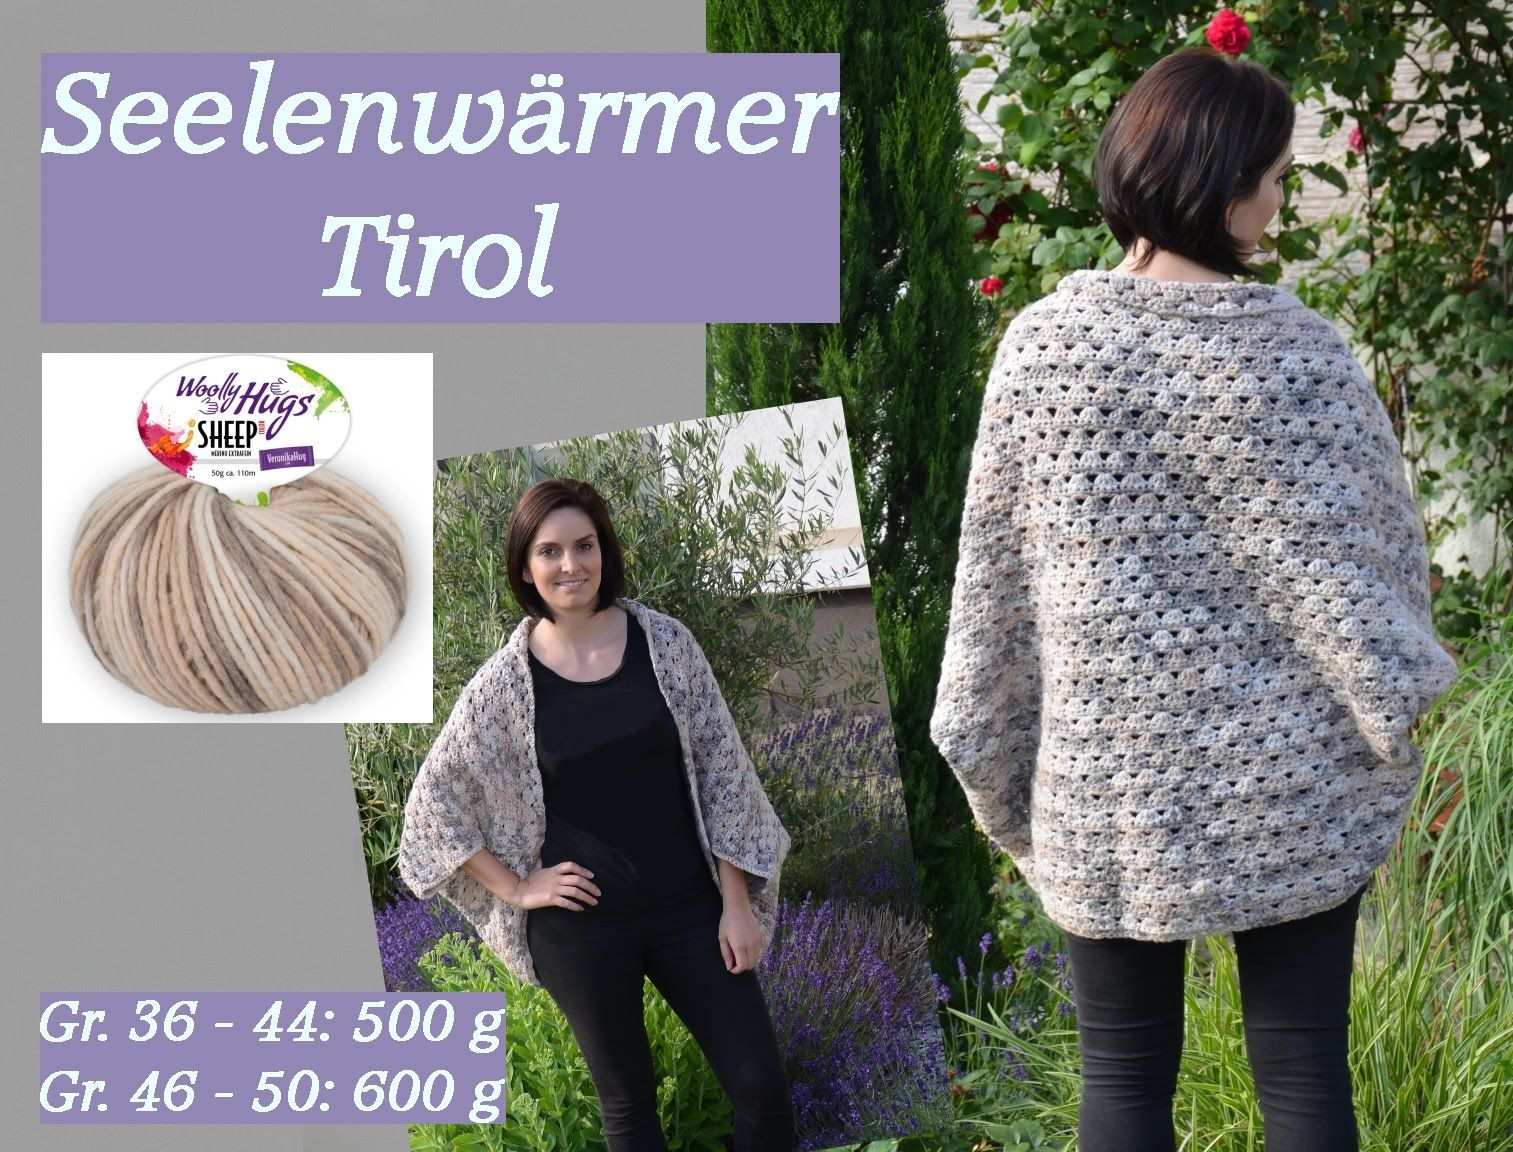 Häkeln Seelenwärmer Woolly Hugs Sheep Veronika Hug Youtube